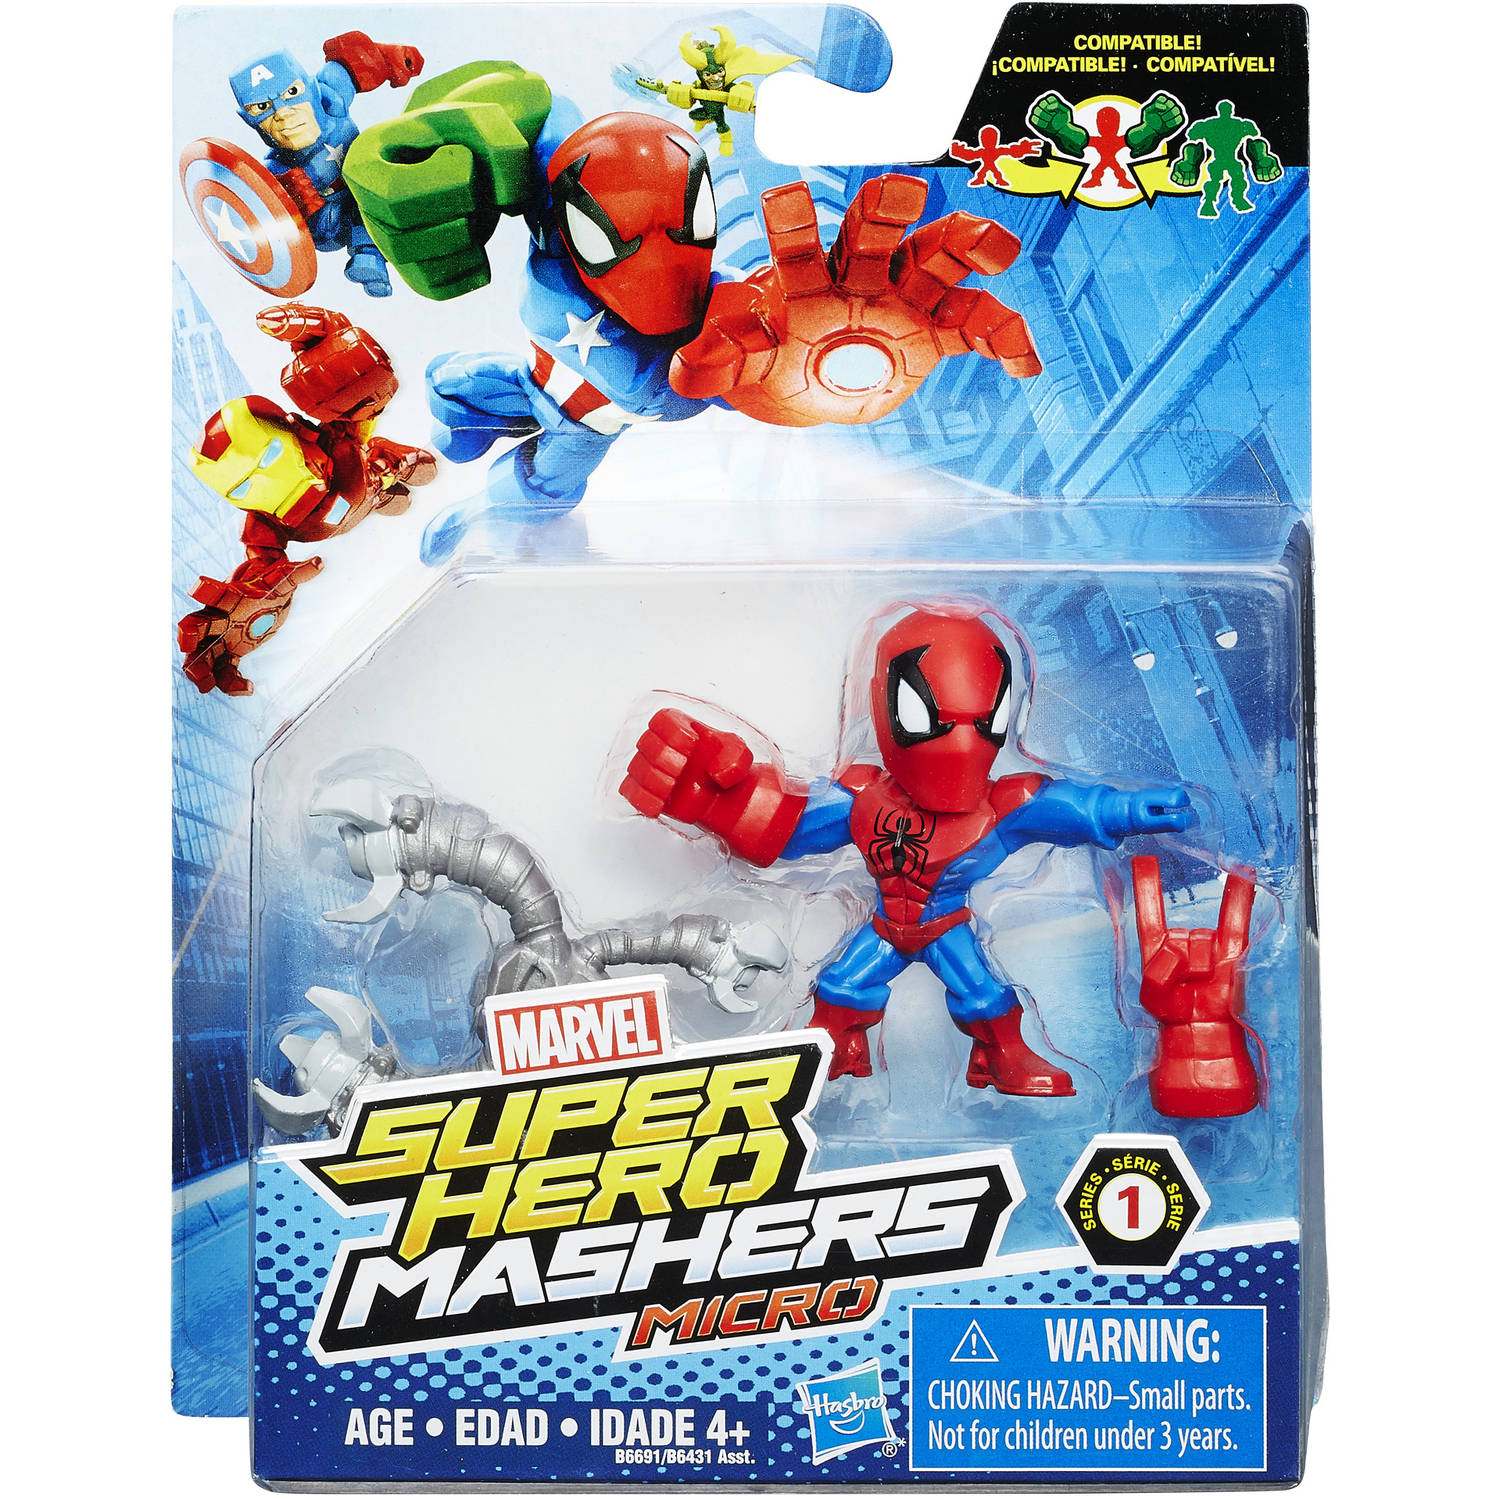 marvel hero mashers